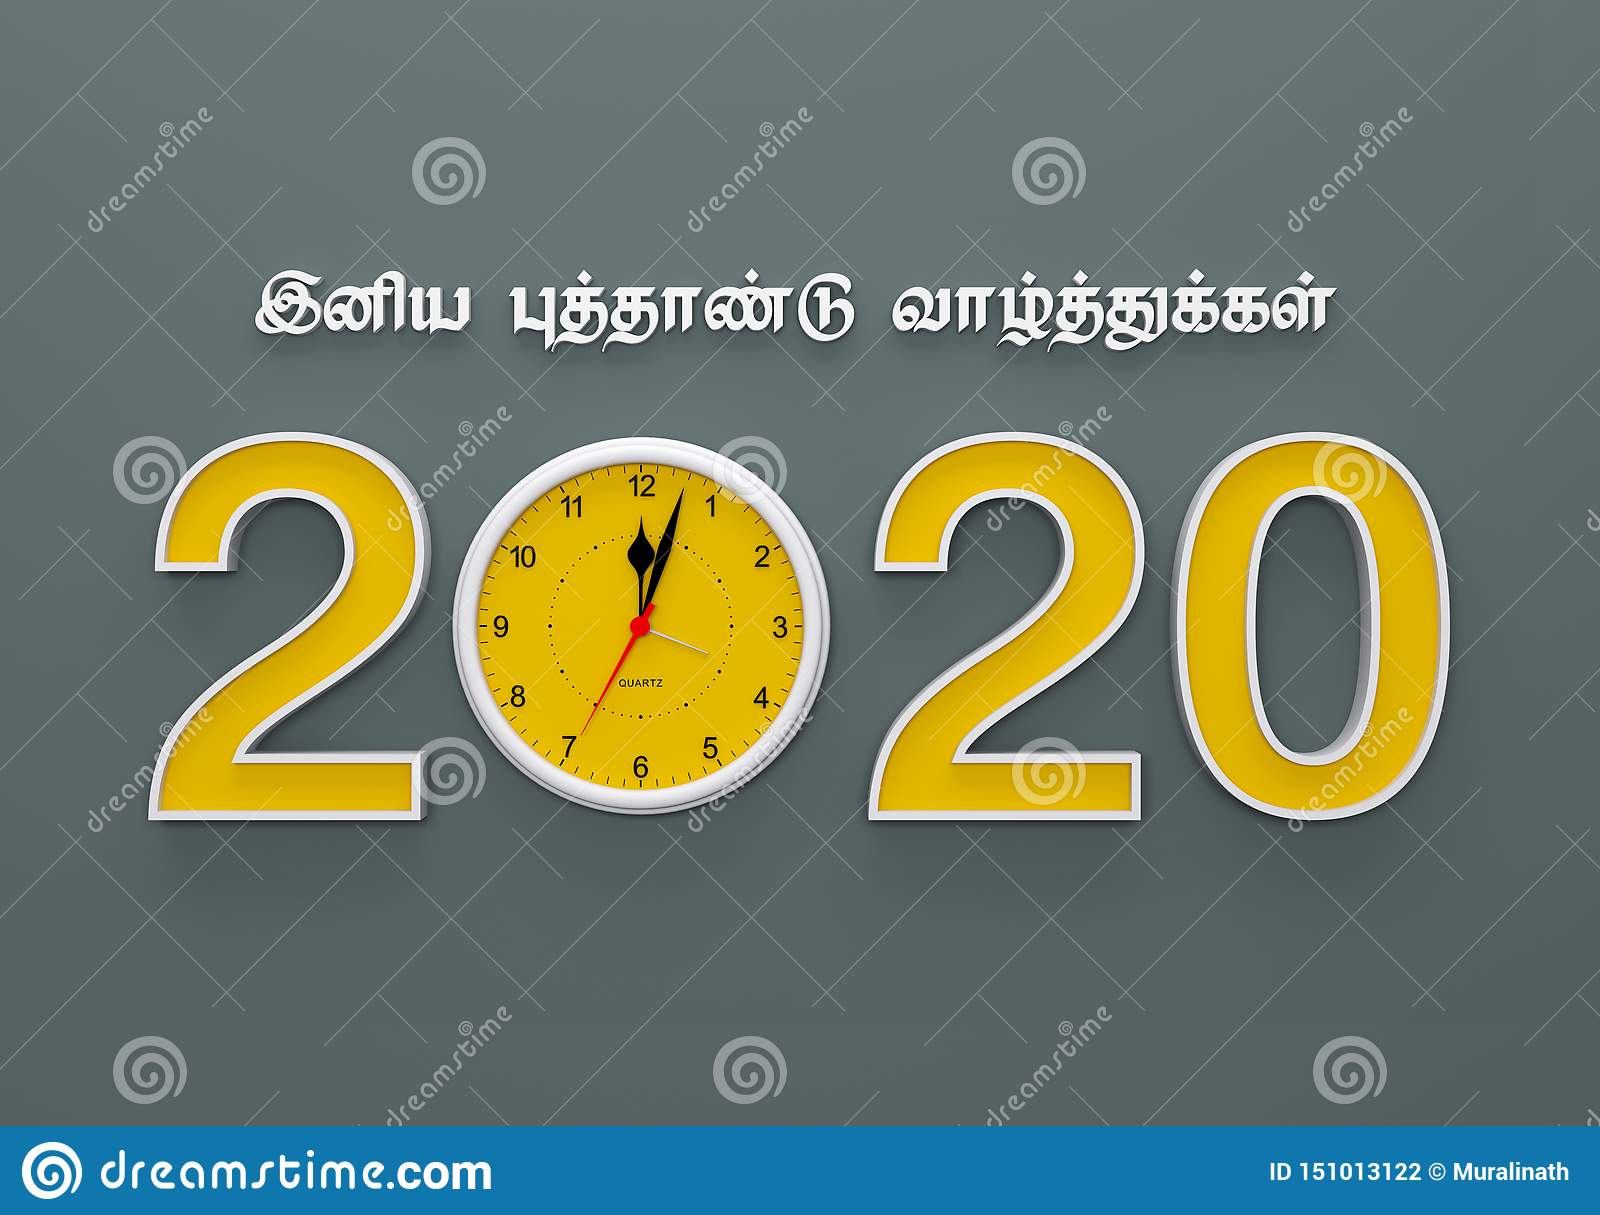 Tamil New Year 2020.New Year 2020 Creative Design Concept With Tamil Text Stock